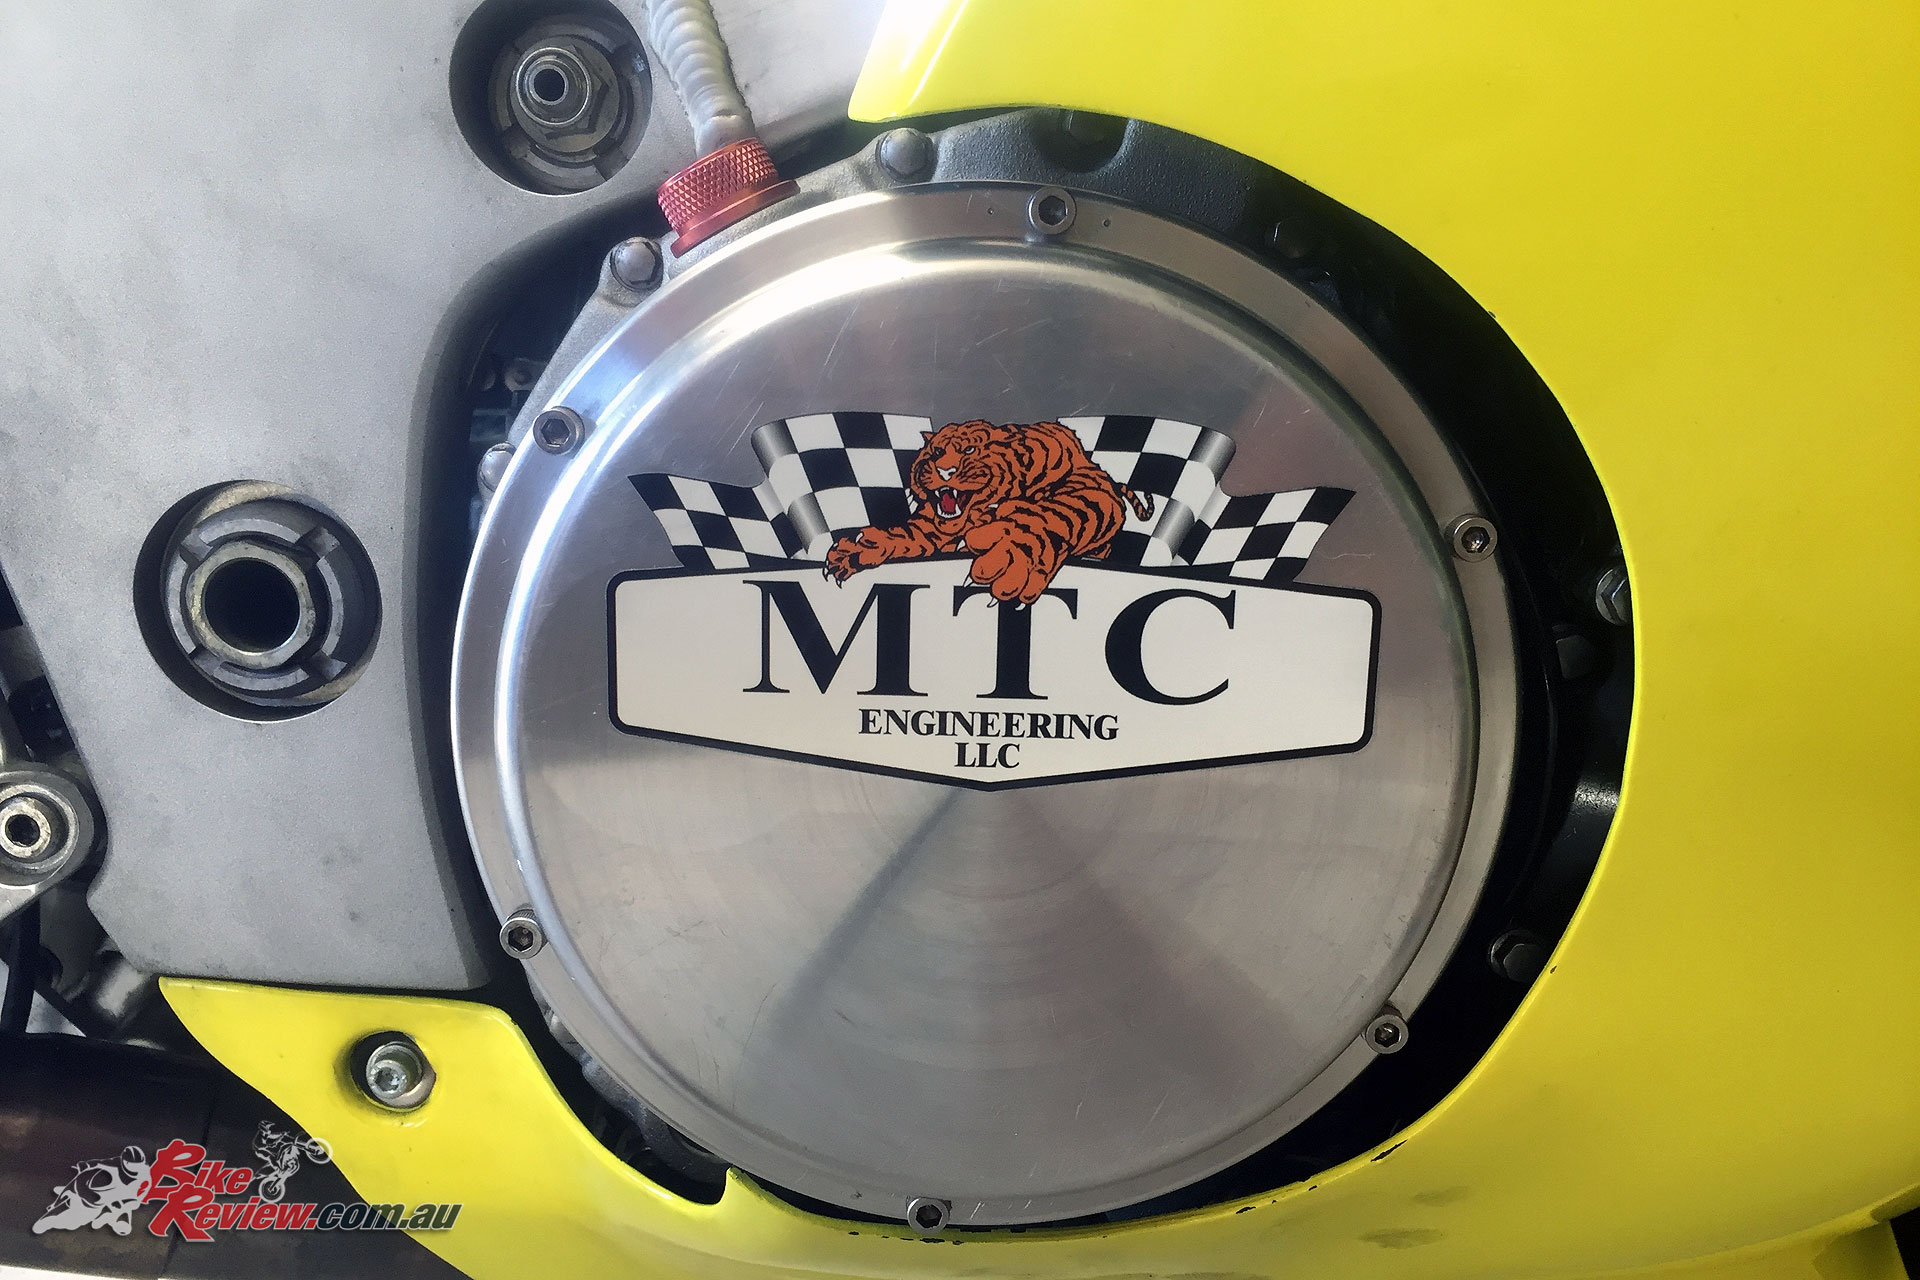 The final job was the new sticker on the LAE Quick Access clutch cover.